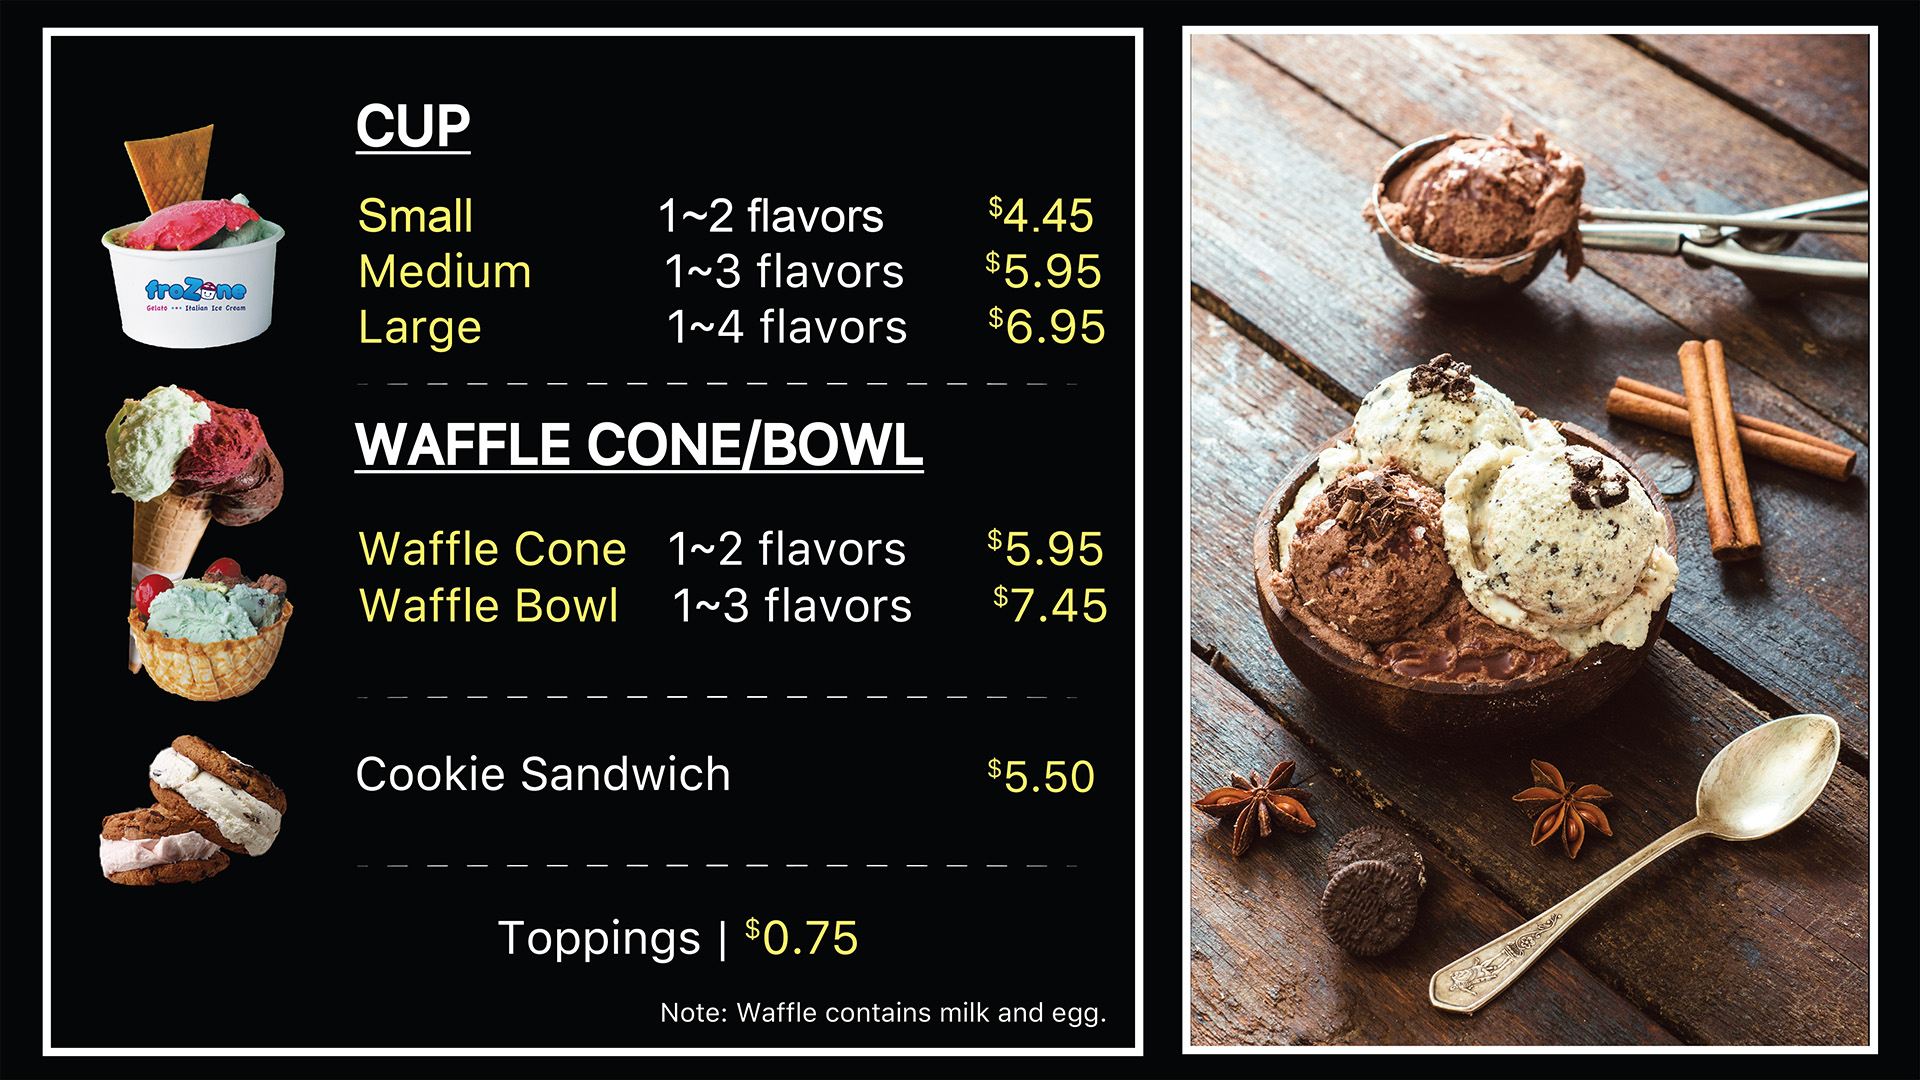 Gelato menu for cups, waffle bowls, and cookie sanwiches.